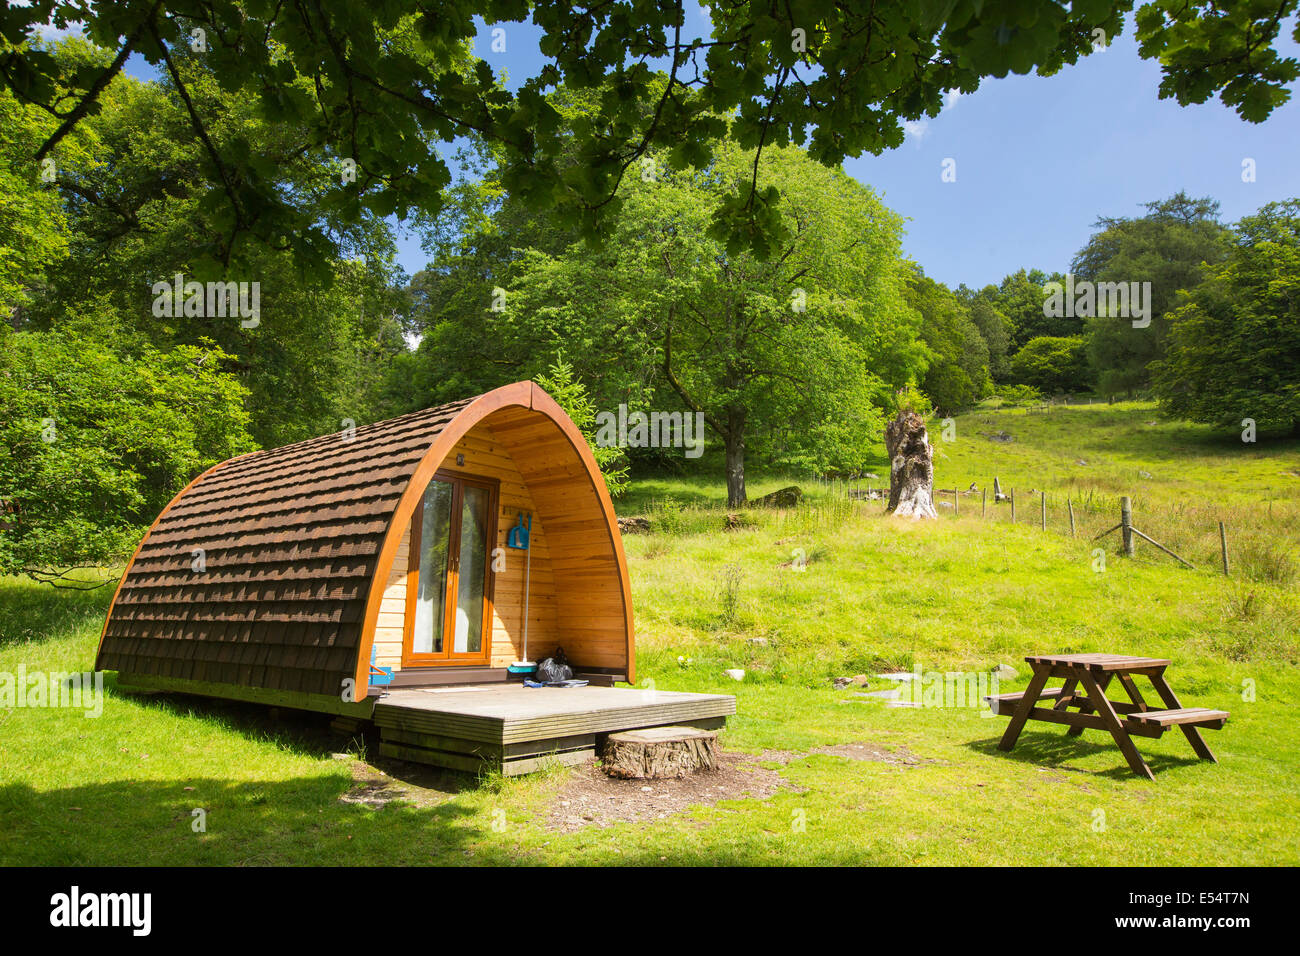 Camping pods in the grounds of Rydal Hall, Lake District, UK. - Stock Image